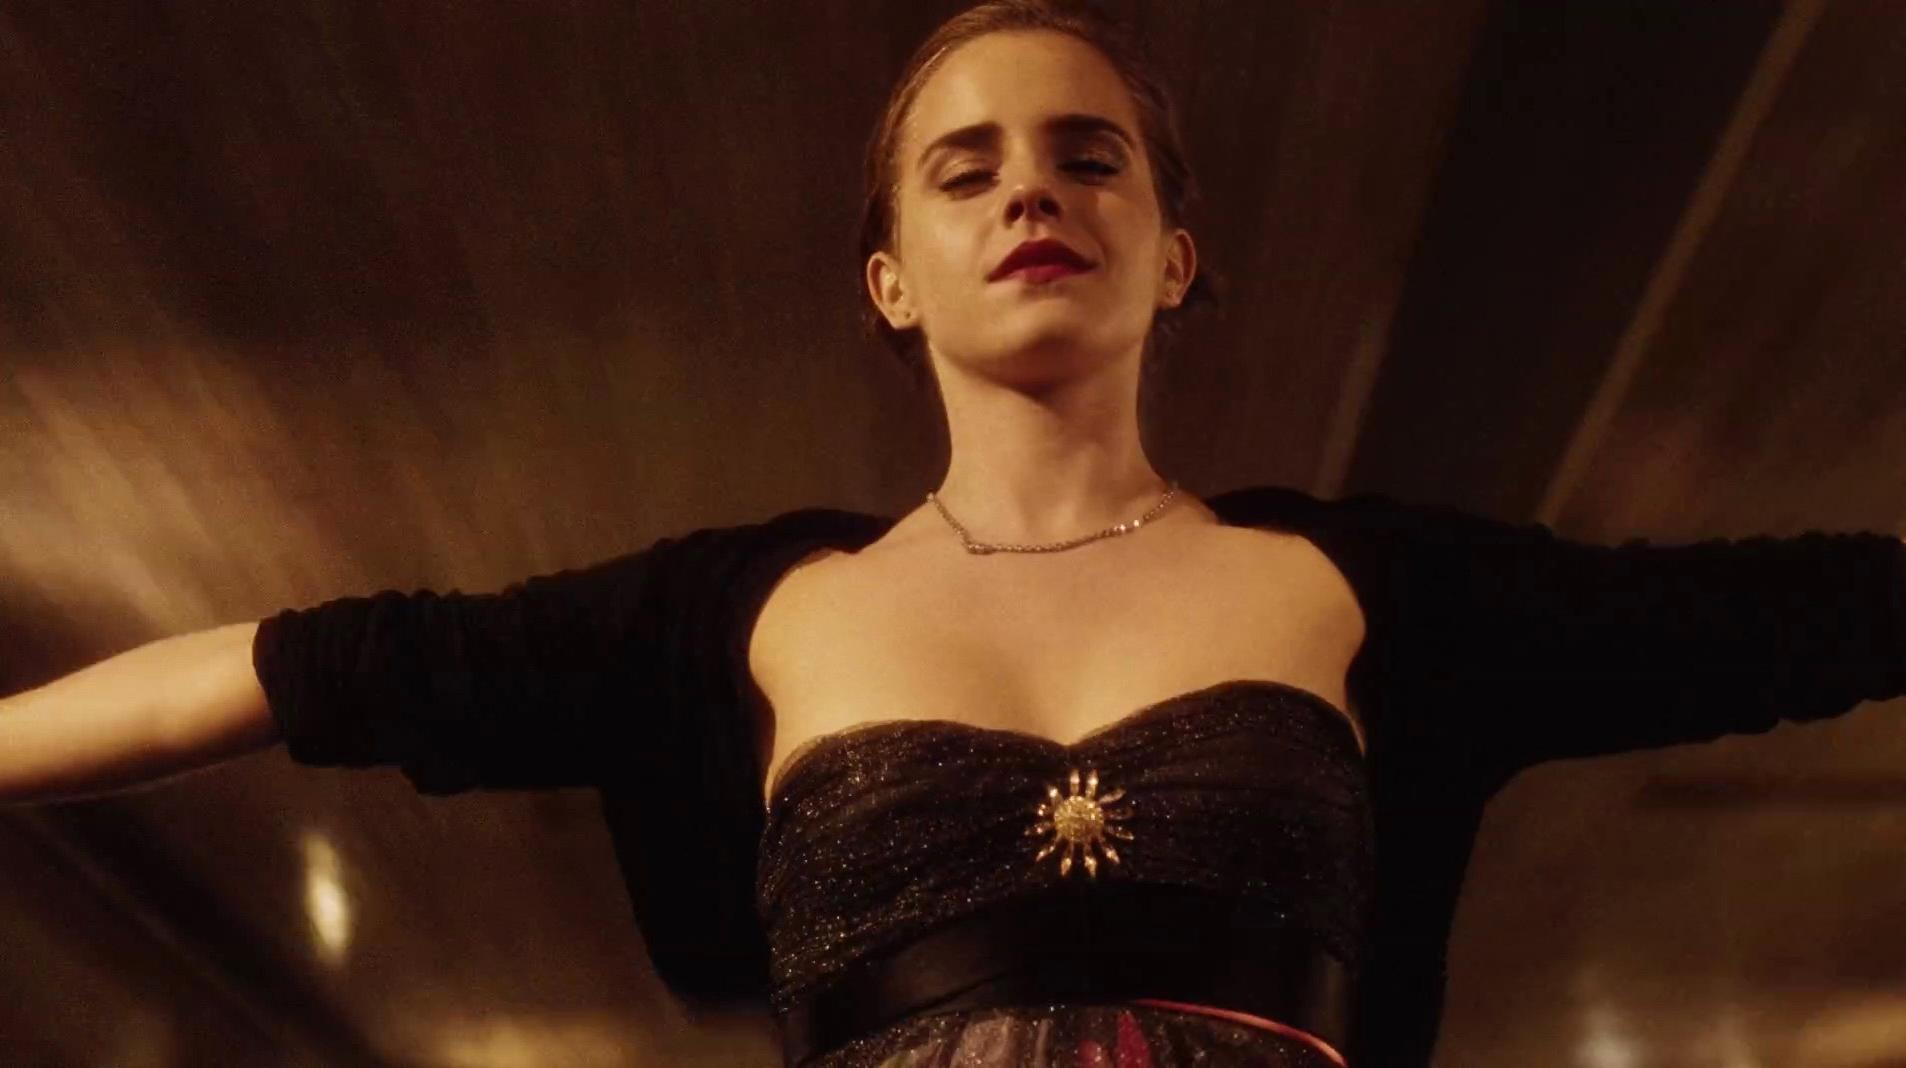 Emma Watson sexy - The Perks Of Being A Wallflower (2012)